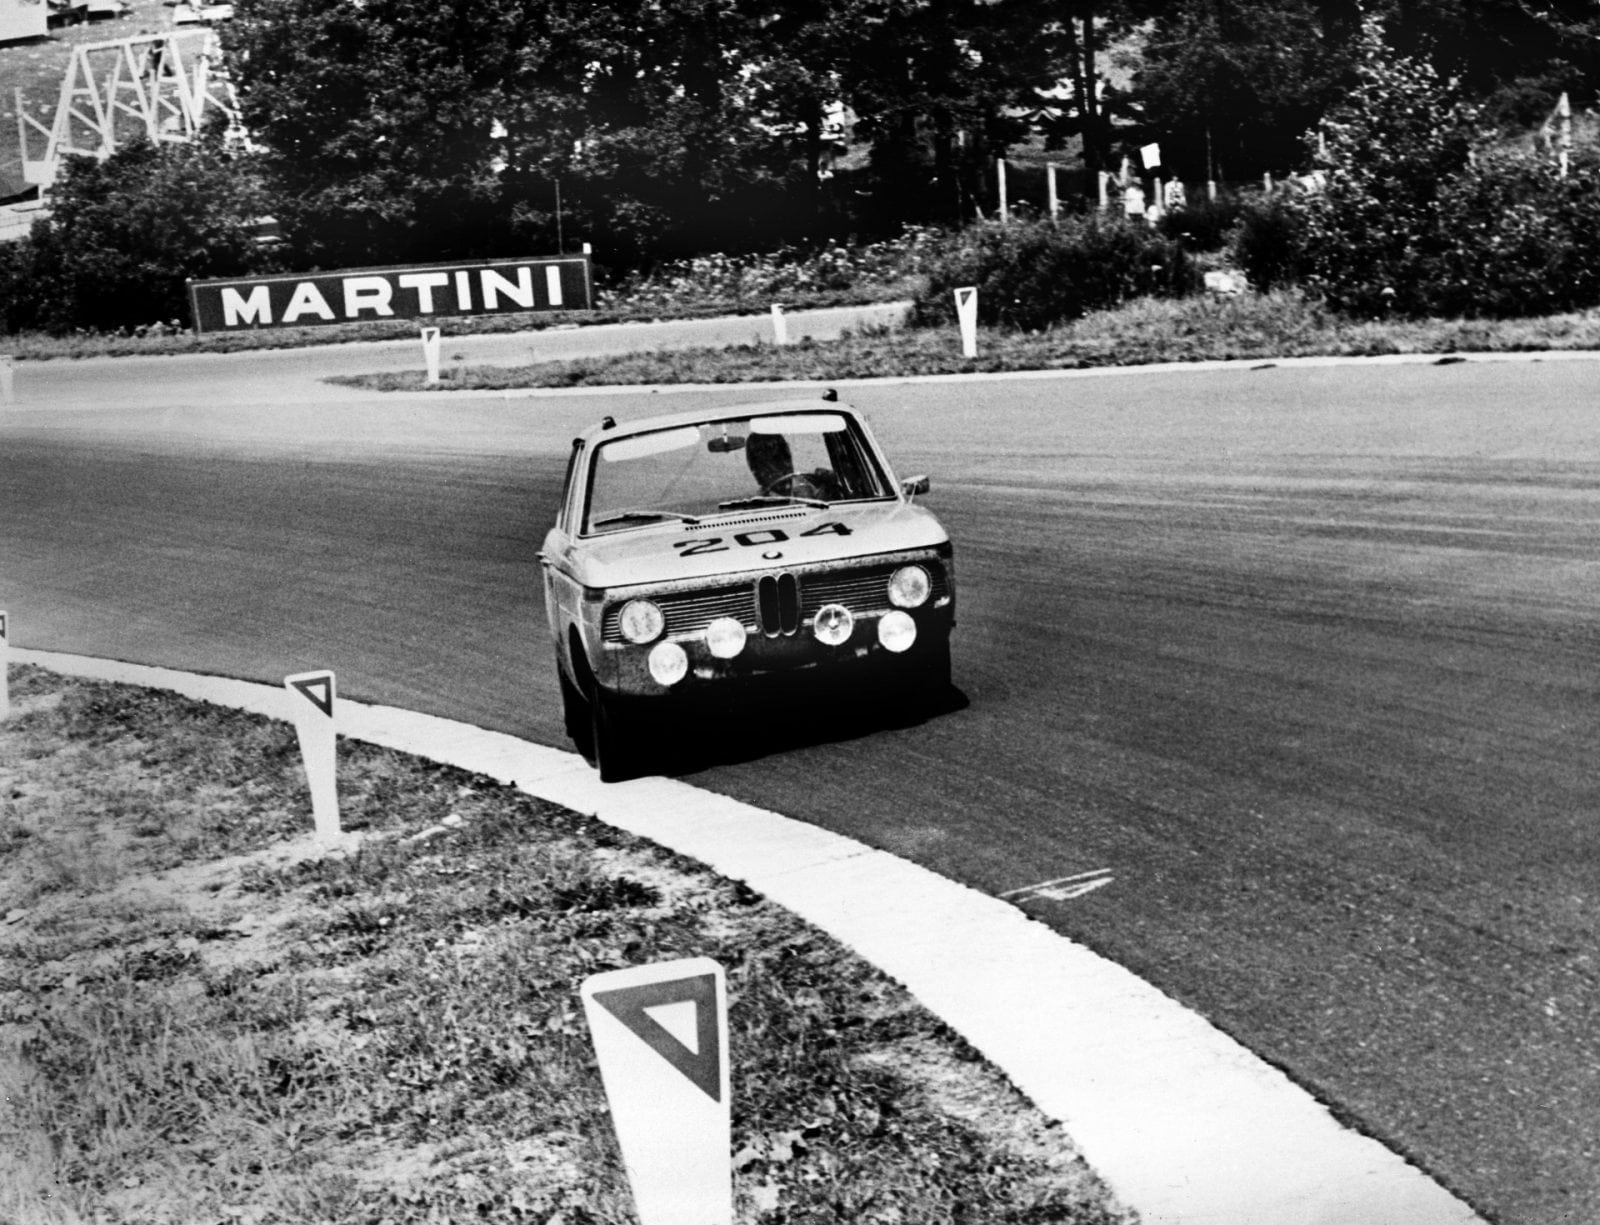 50 Years of BMW New Class, BMW 1800 at Spa-Francorchamps 1964 (03/2011)